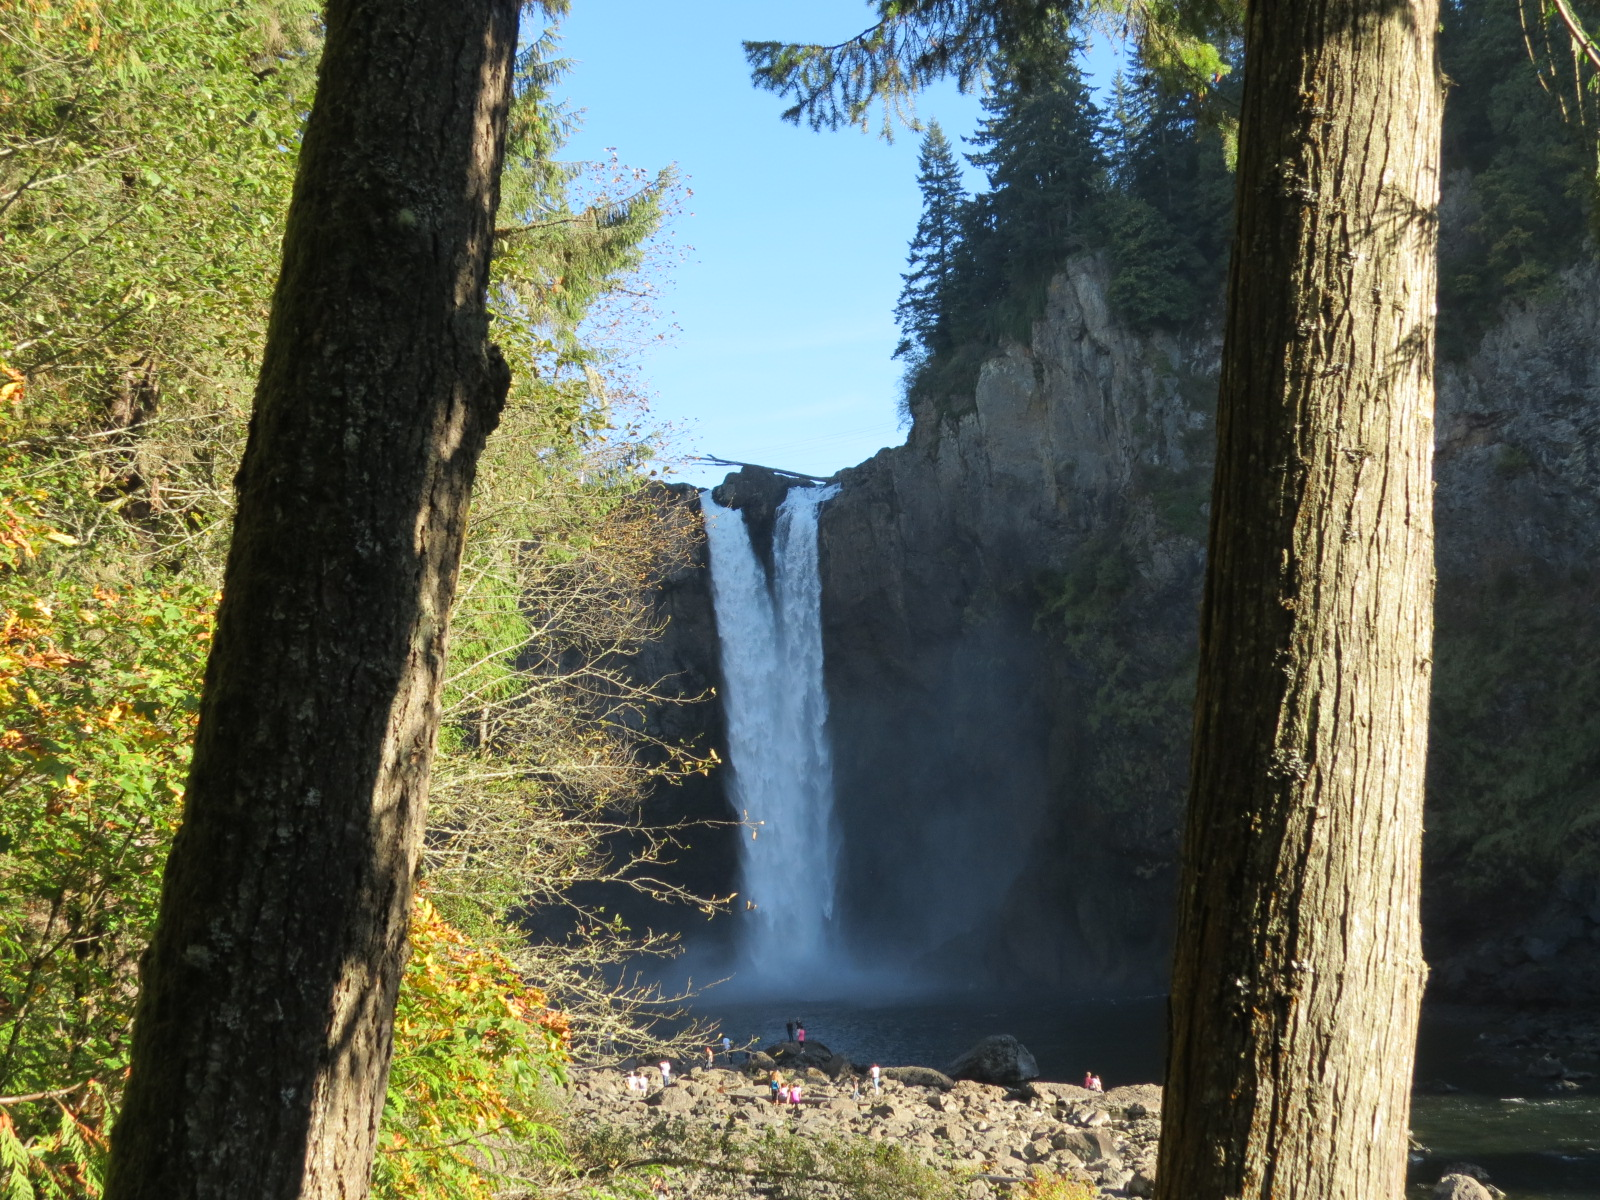 Lower river view of Snoqualmie Falls